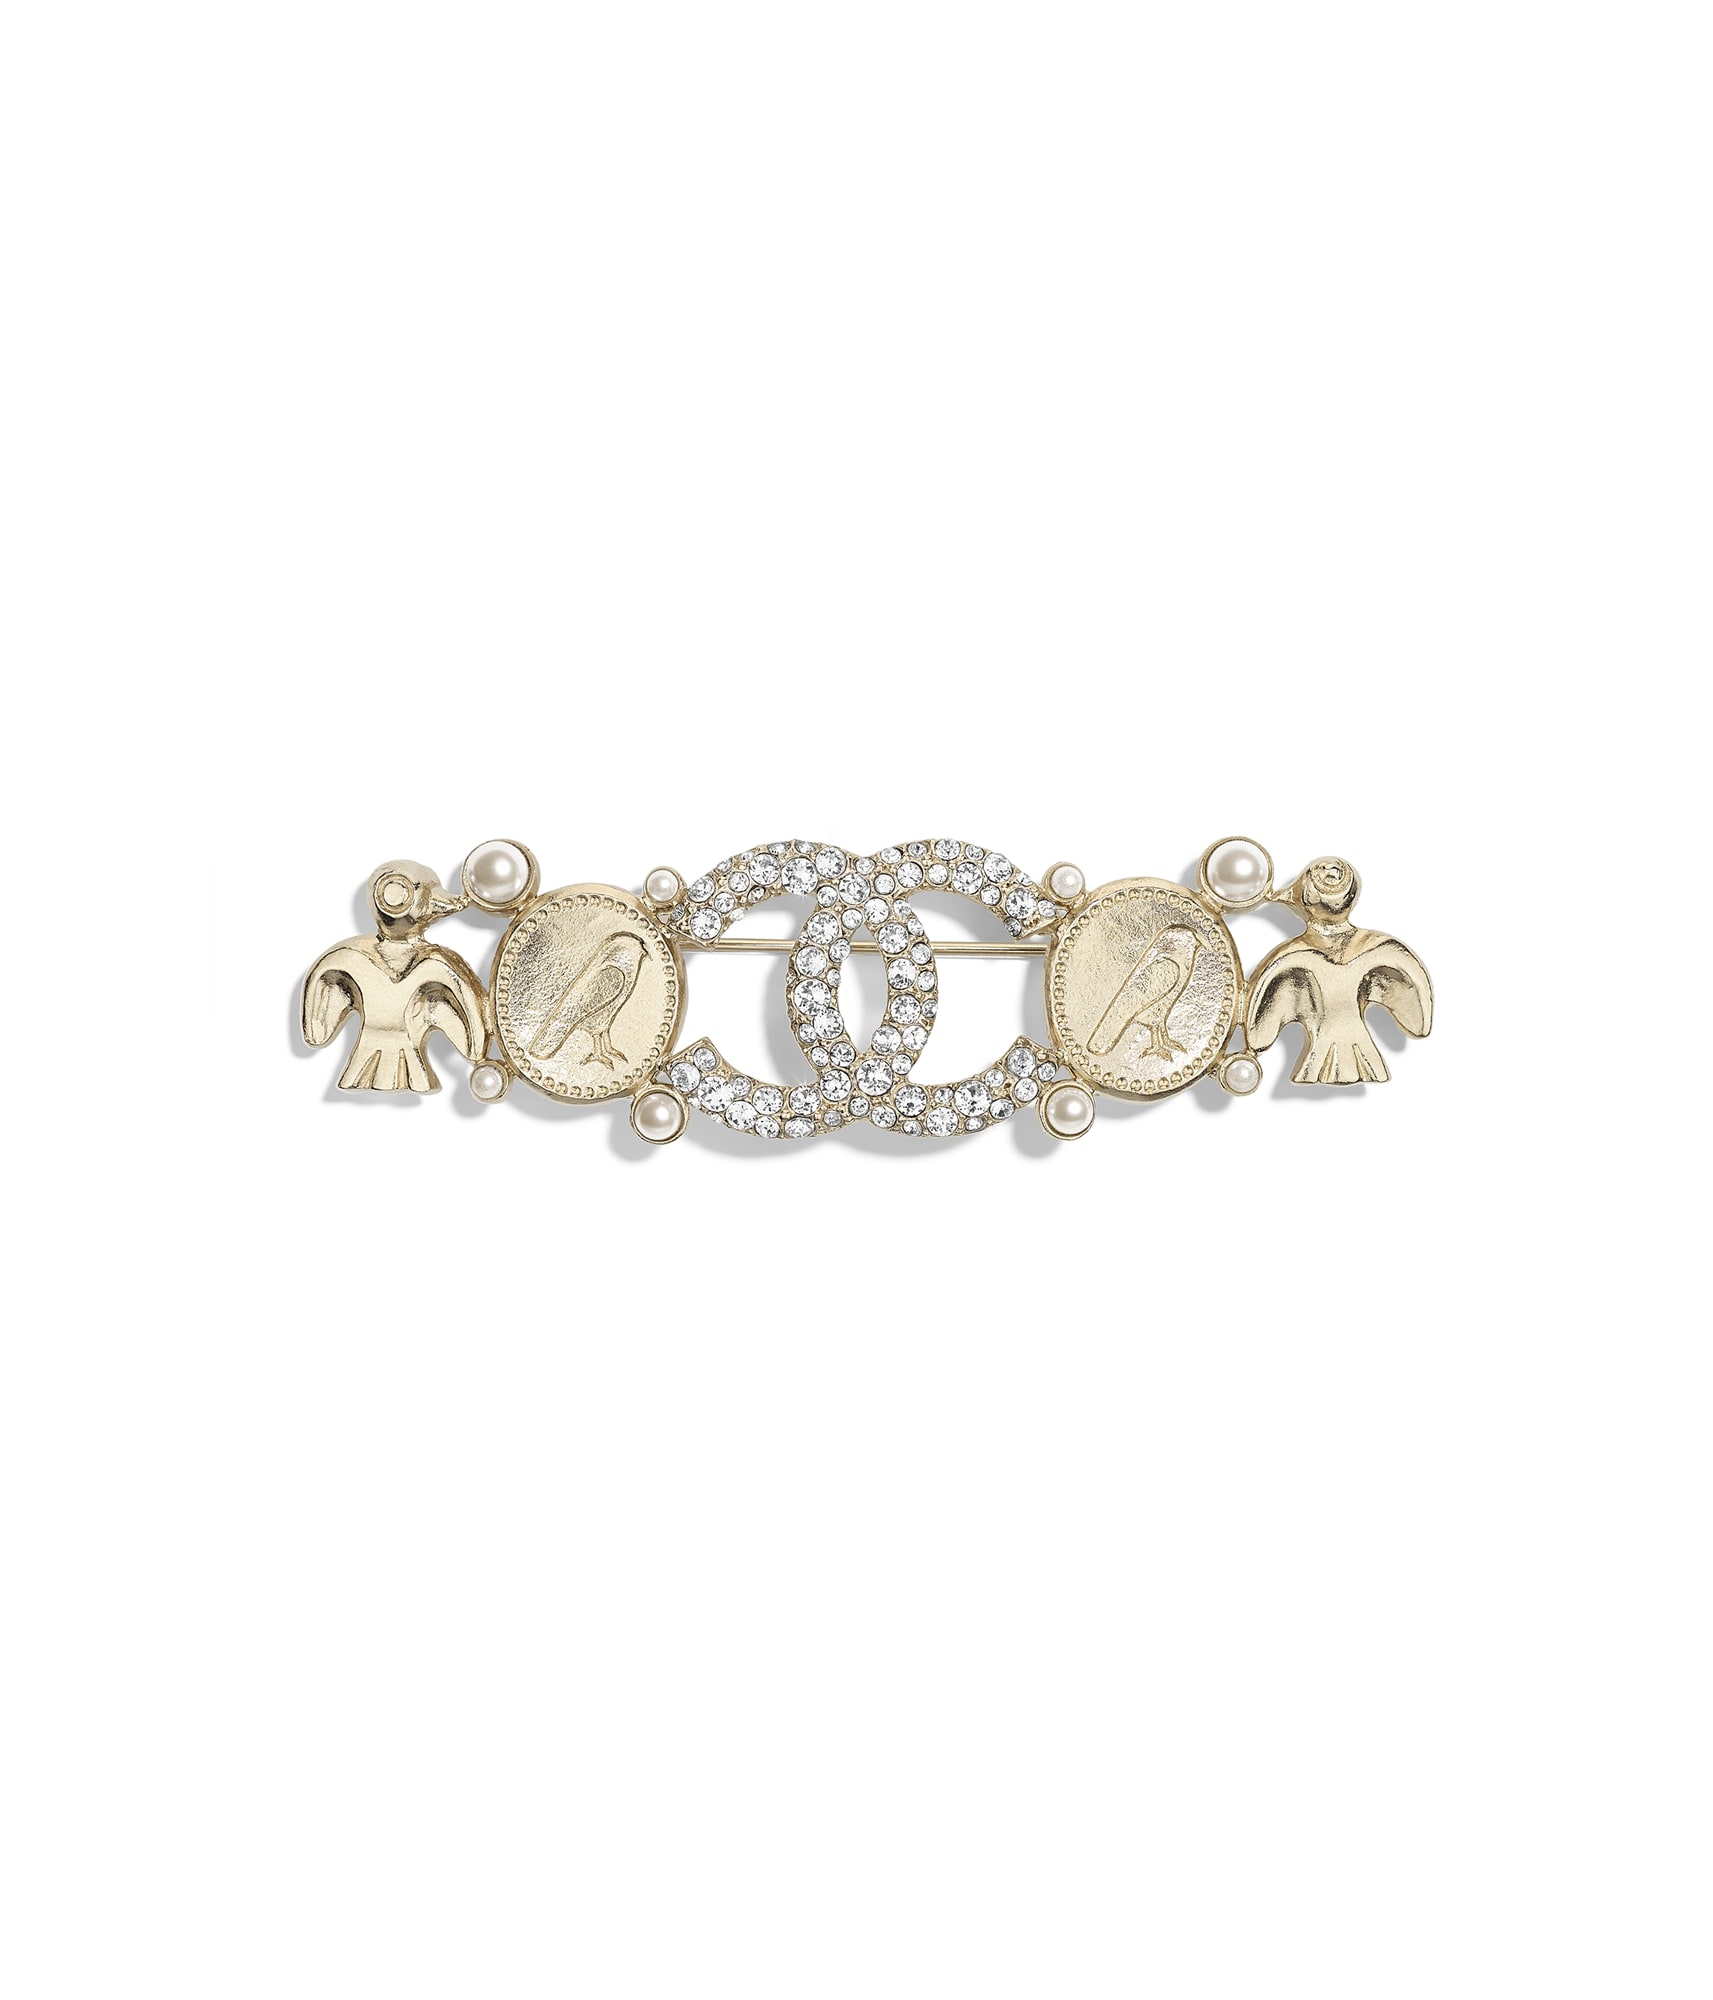 Jewellery & Watches Costume Jewellery But Very Pretty Silver Brooch